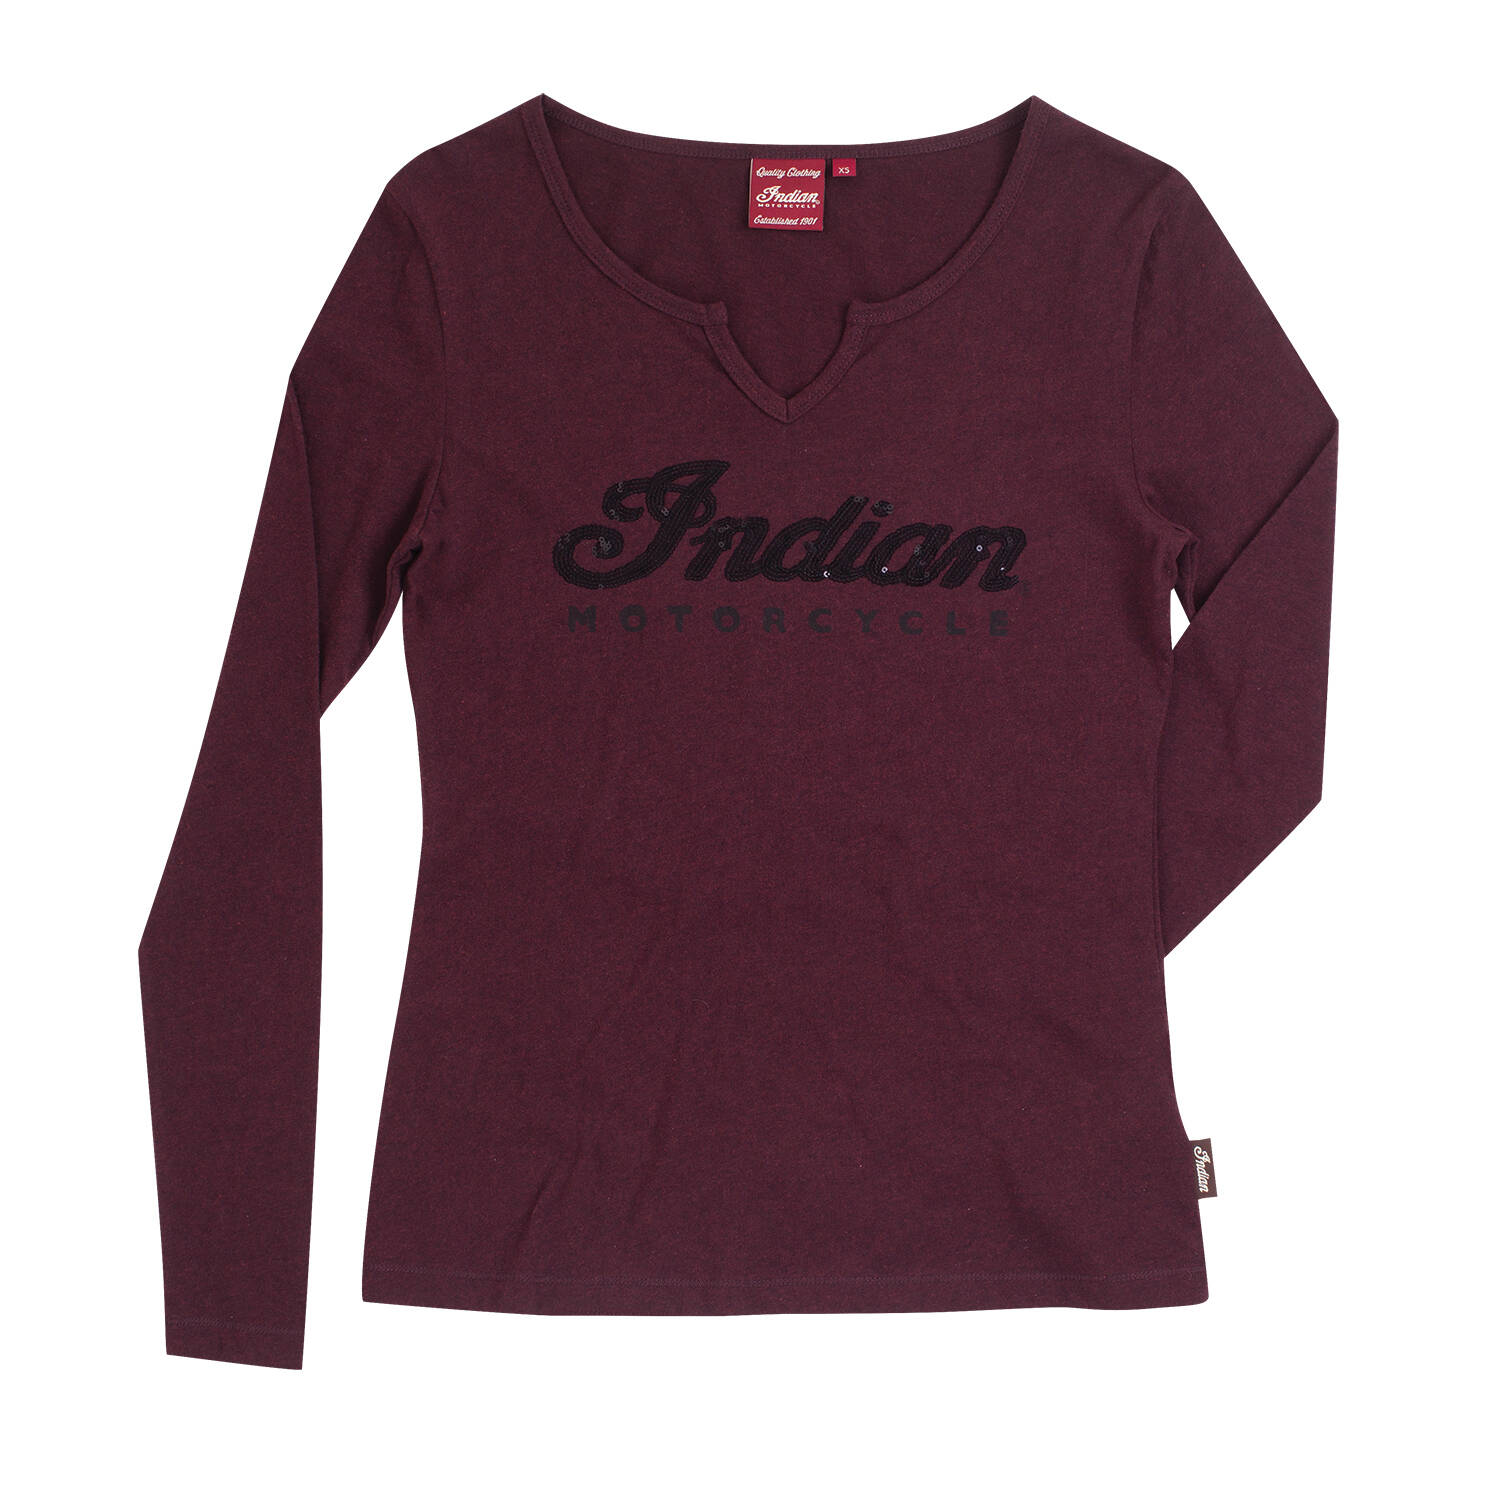 Women's Long-Sleeve T-Shirt with Sequin Logo, Port